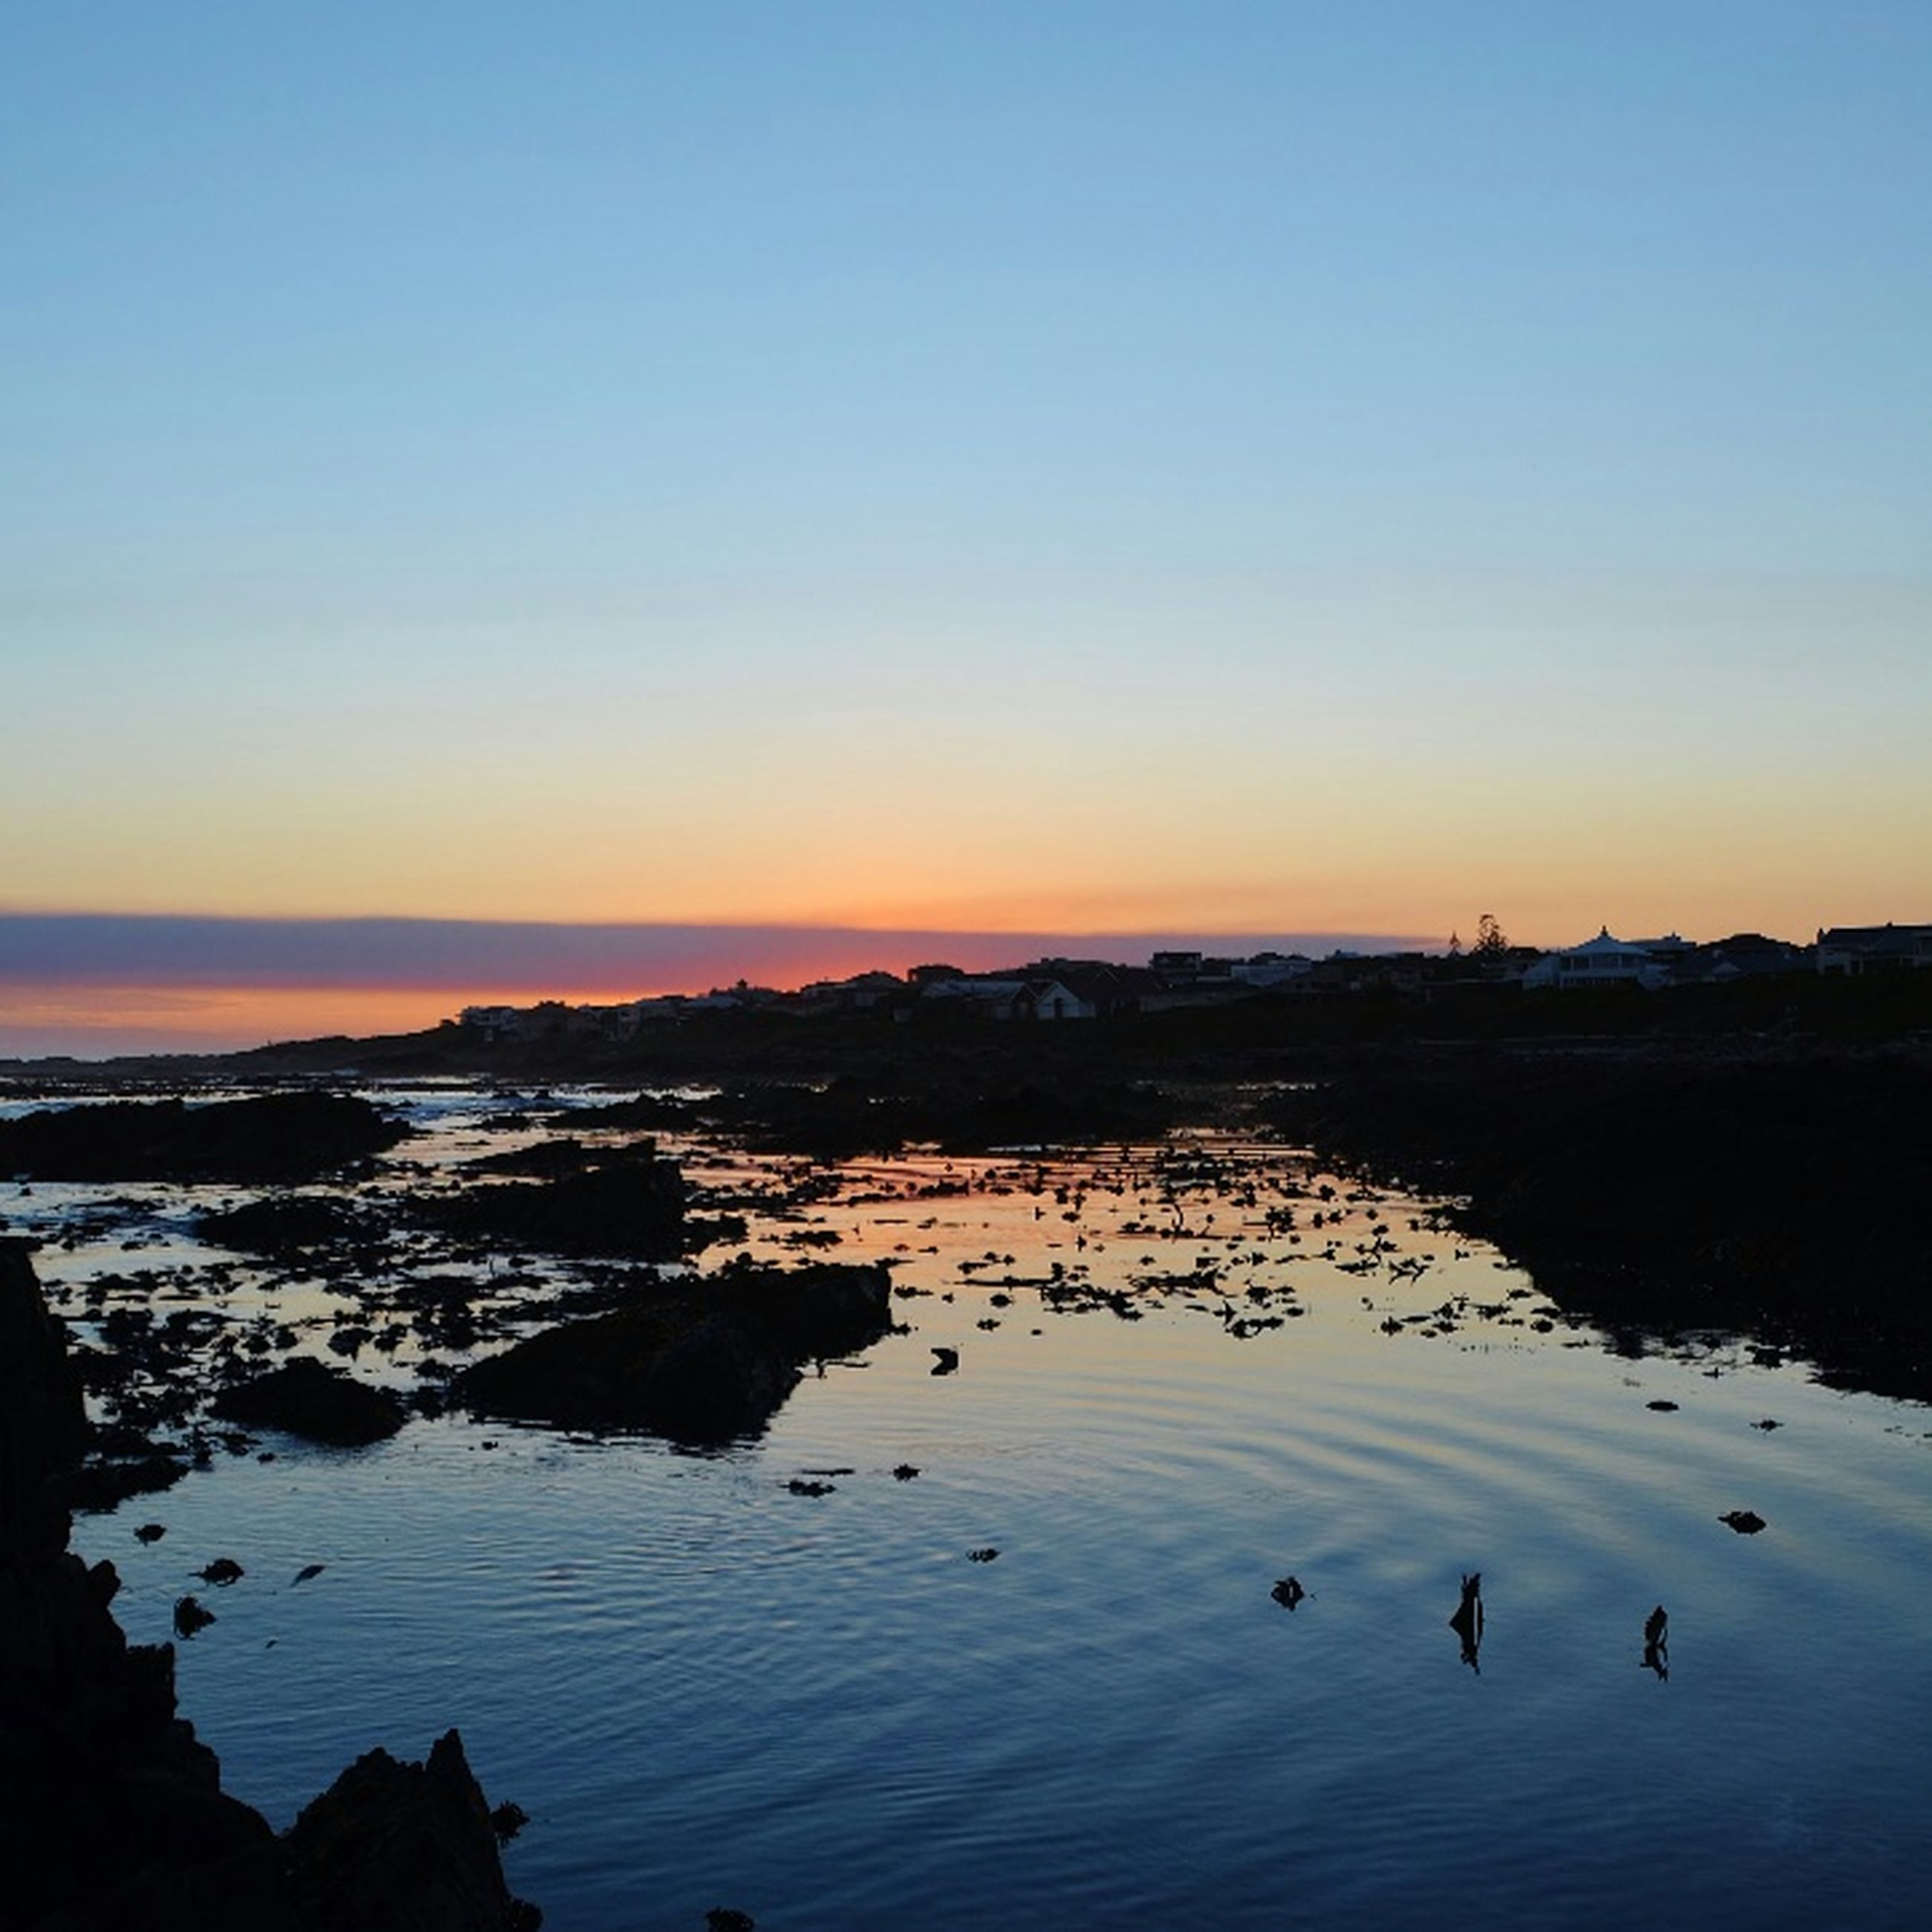 water, sunset, clear sky, scenics, tranquil scene, copy space, tranquility, beauty in nature, sea, silhouette, nature, idyllic, reflection, beach, shore, sky, horizon over water, dusk, outdoors, calm